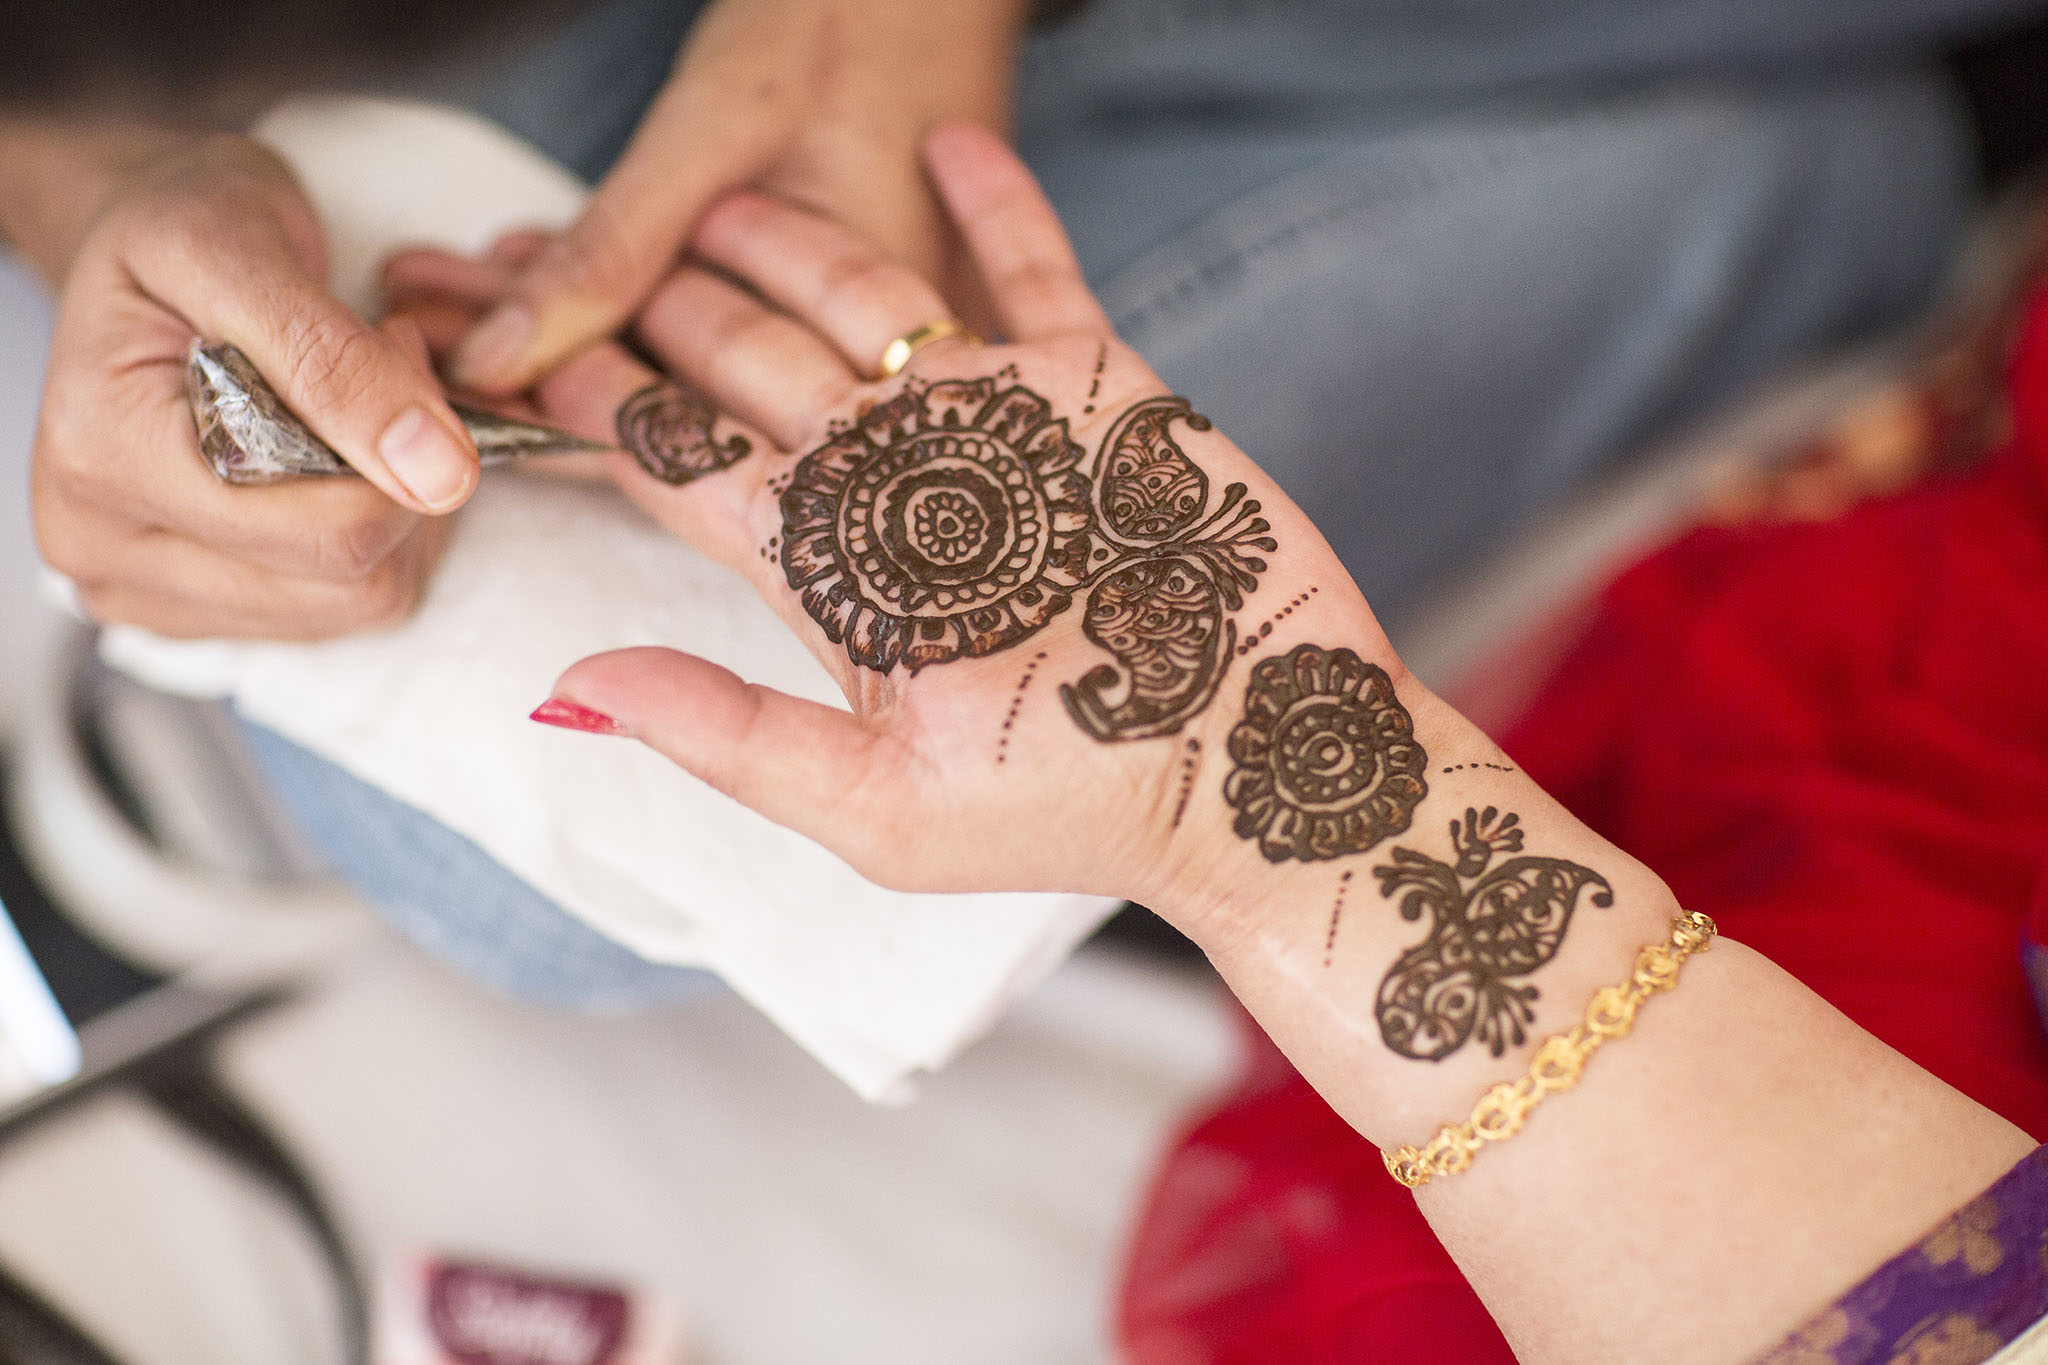 elizabethgphotography_kingslangley_hertfordshire_fineart_indian_wedding_mehndi_photography_jigna_bhuja_05.jpg